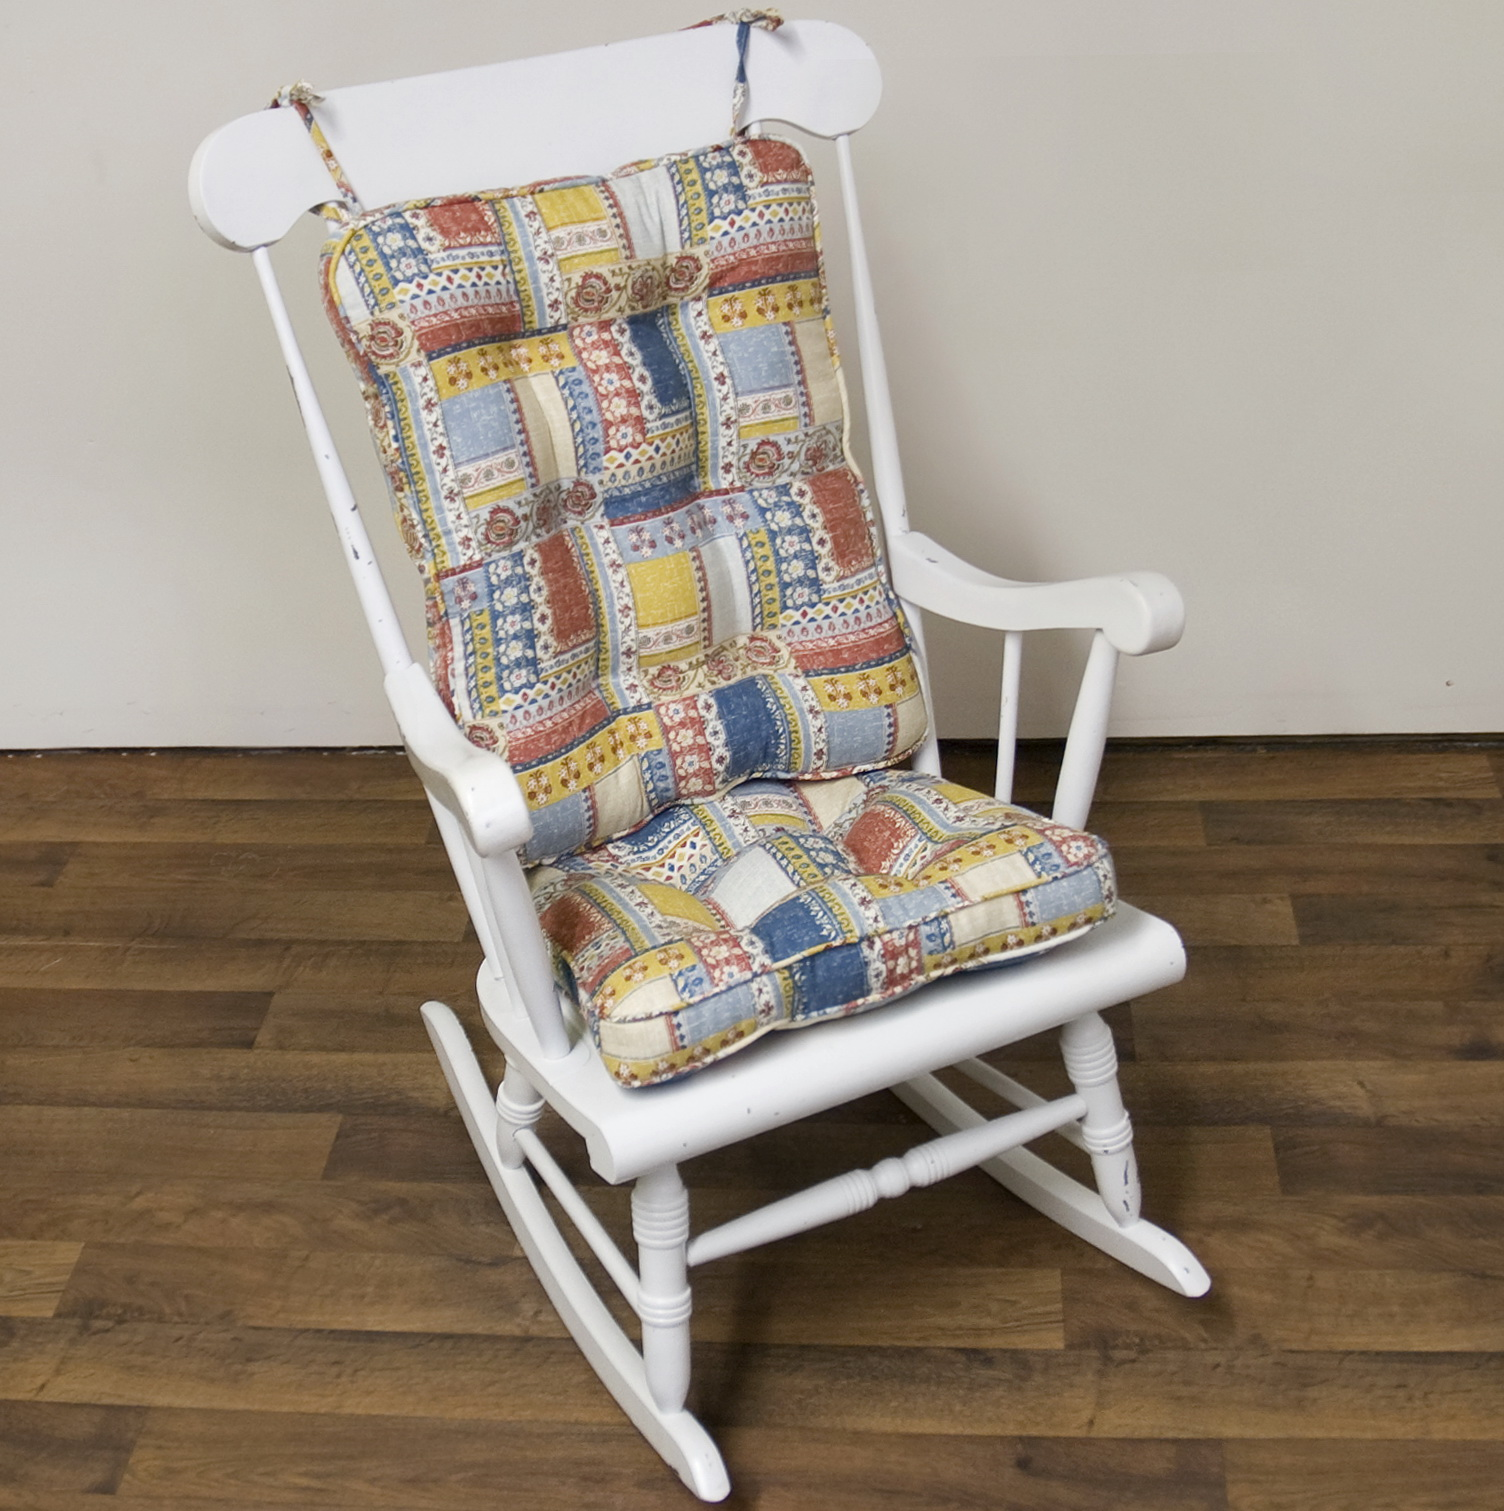 Target Rocking Chair Adirondack Chairs Cushions Target Home Design Ideas